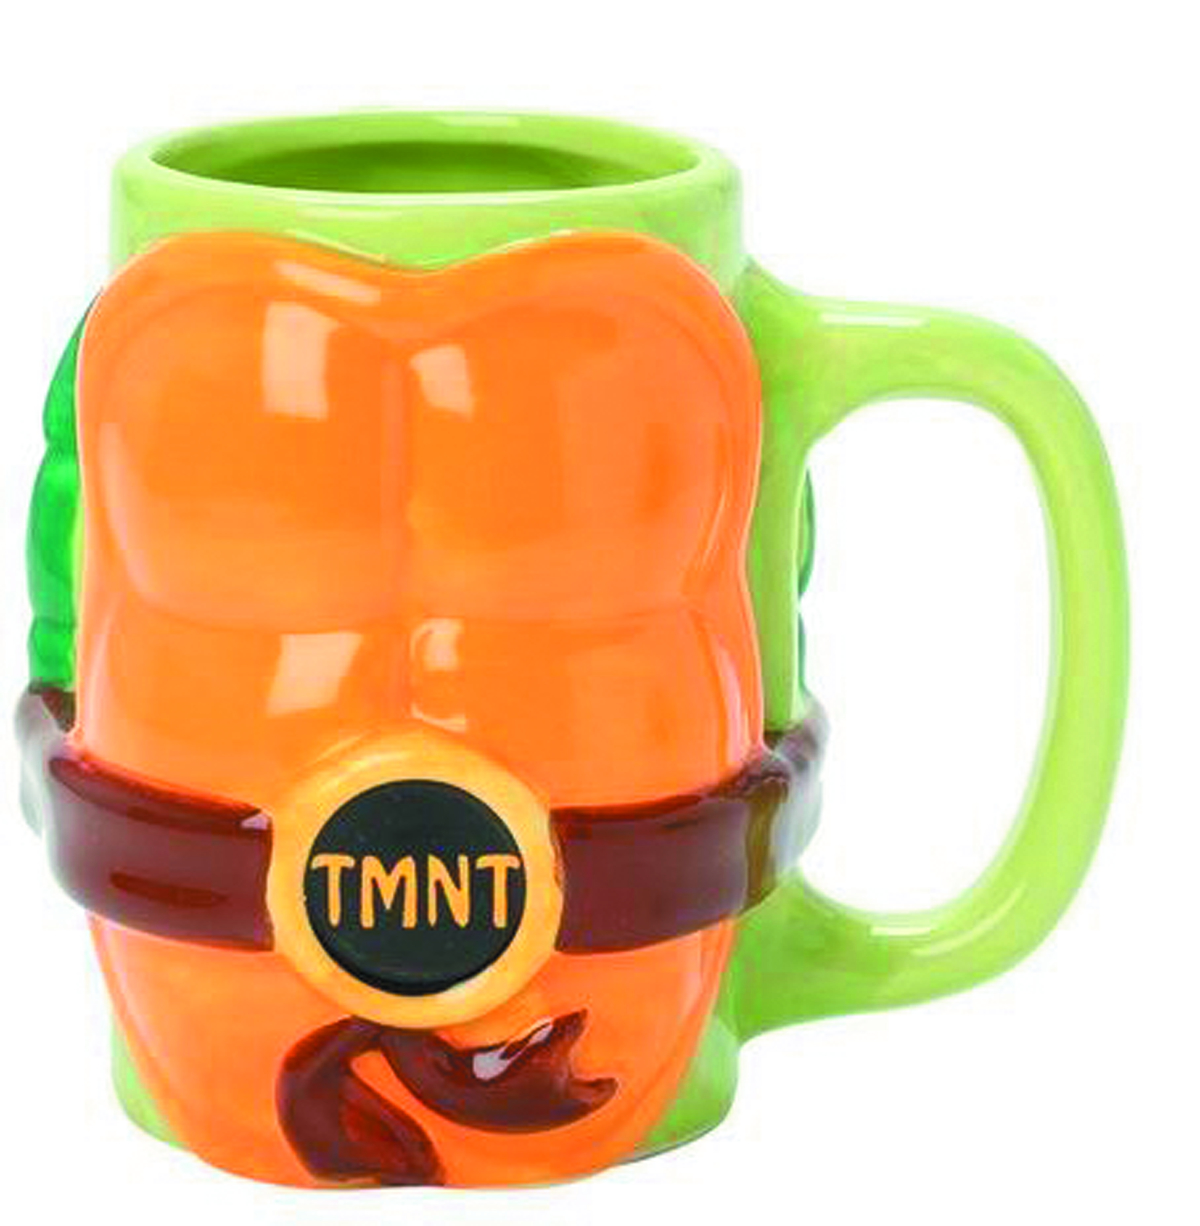 Ninja Mugs Jun152717 Teenage Mutant Ninja Turtles Molded Mug